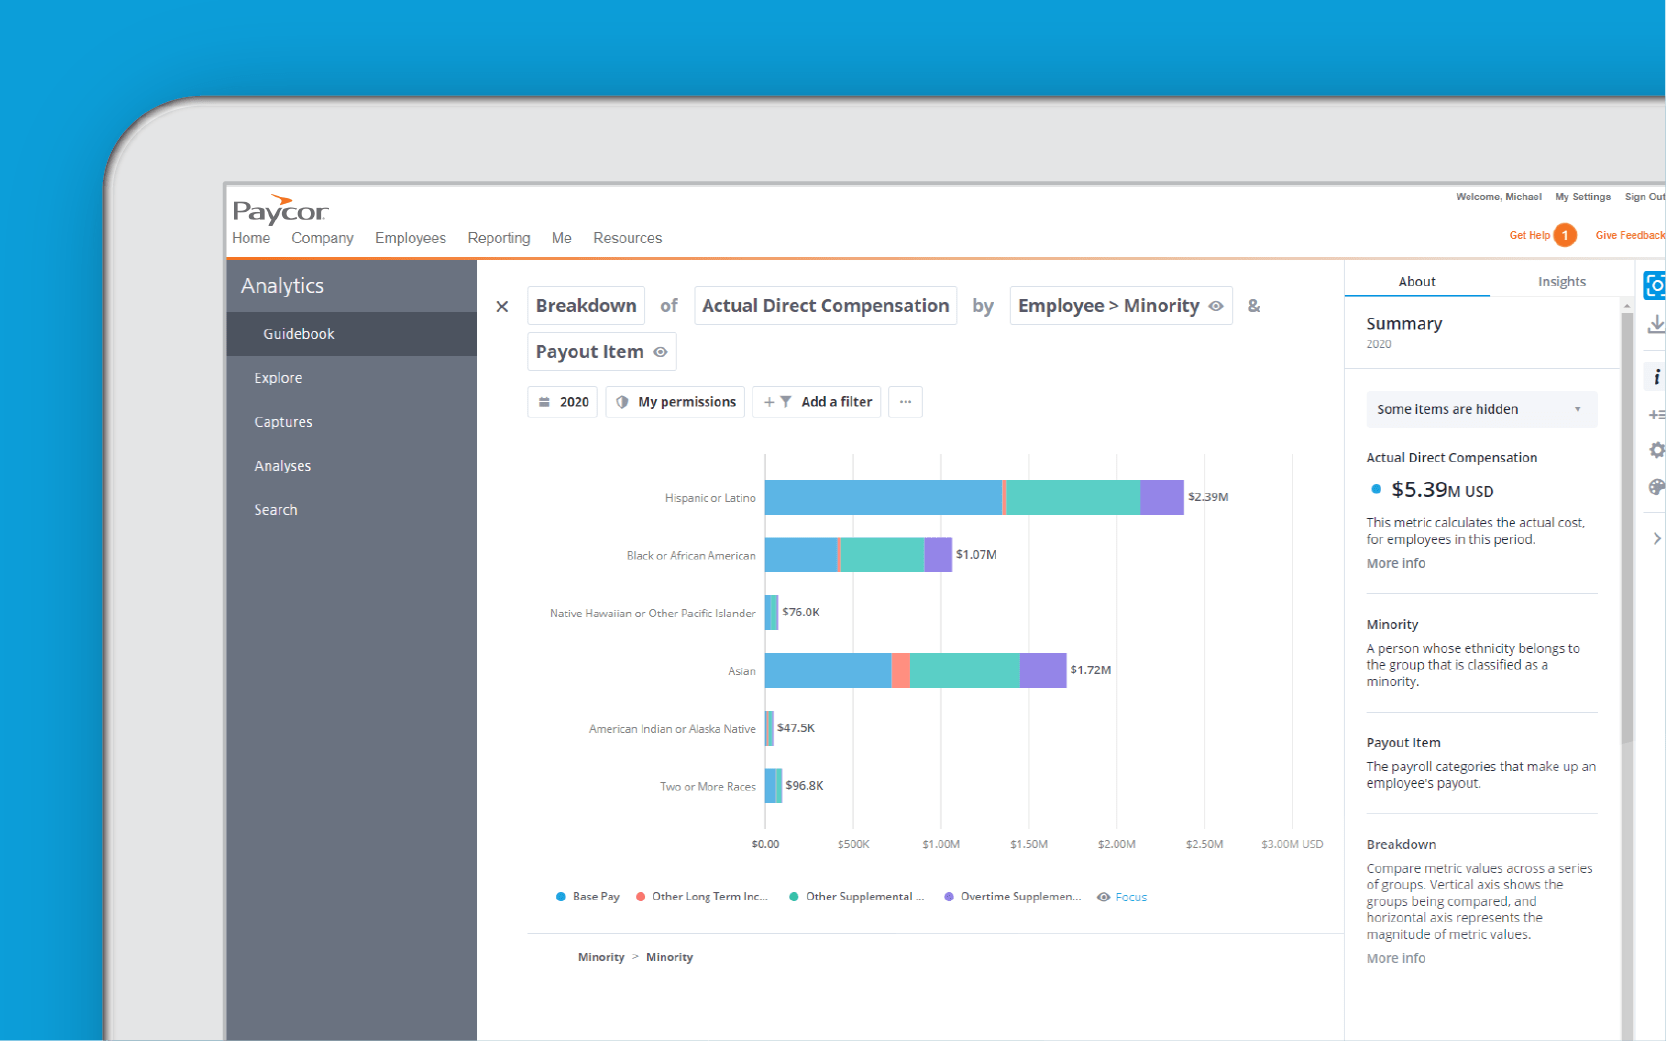 Corner of tablet showing Paycor analytics dashboard against blue background